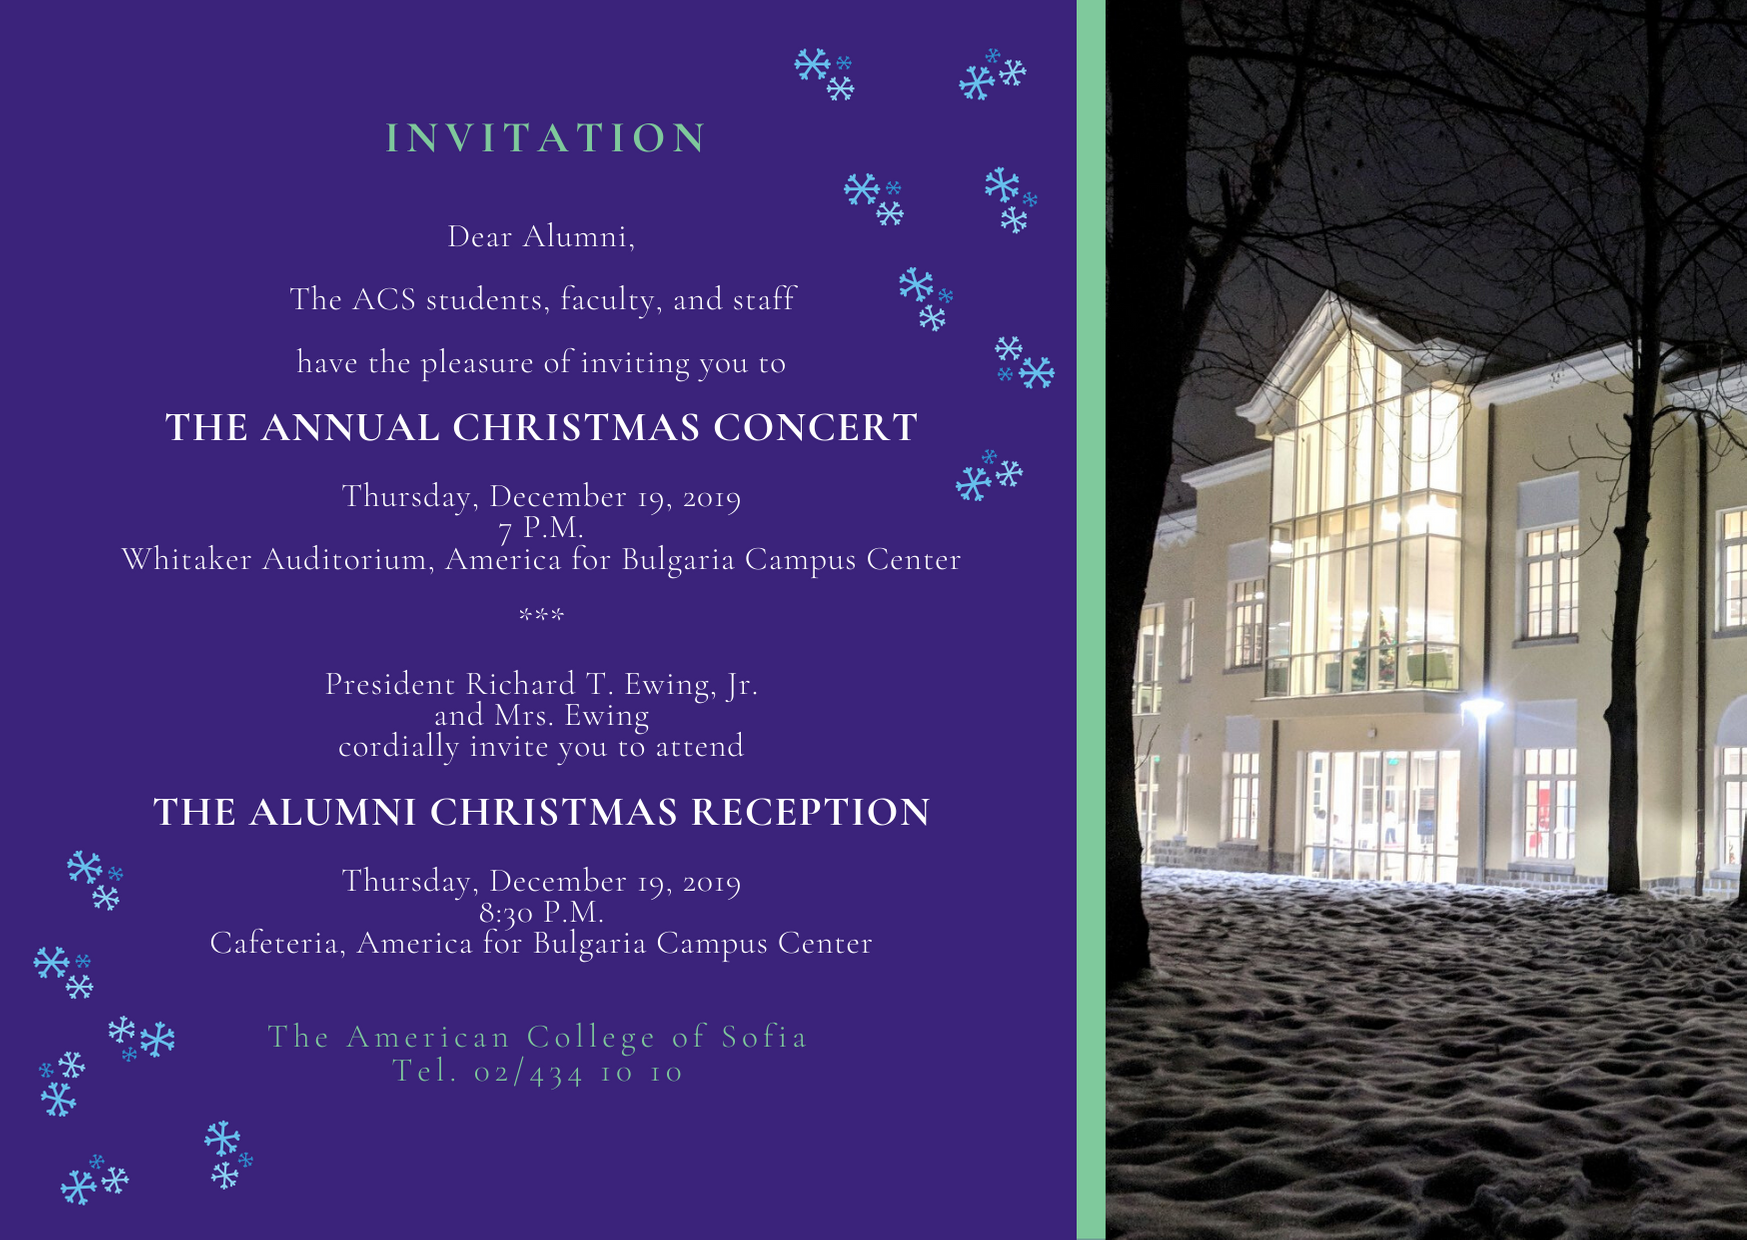 acs-alumni-invitation-2019_finalpng